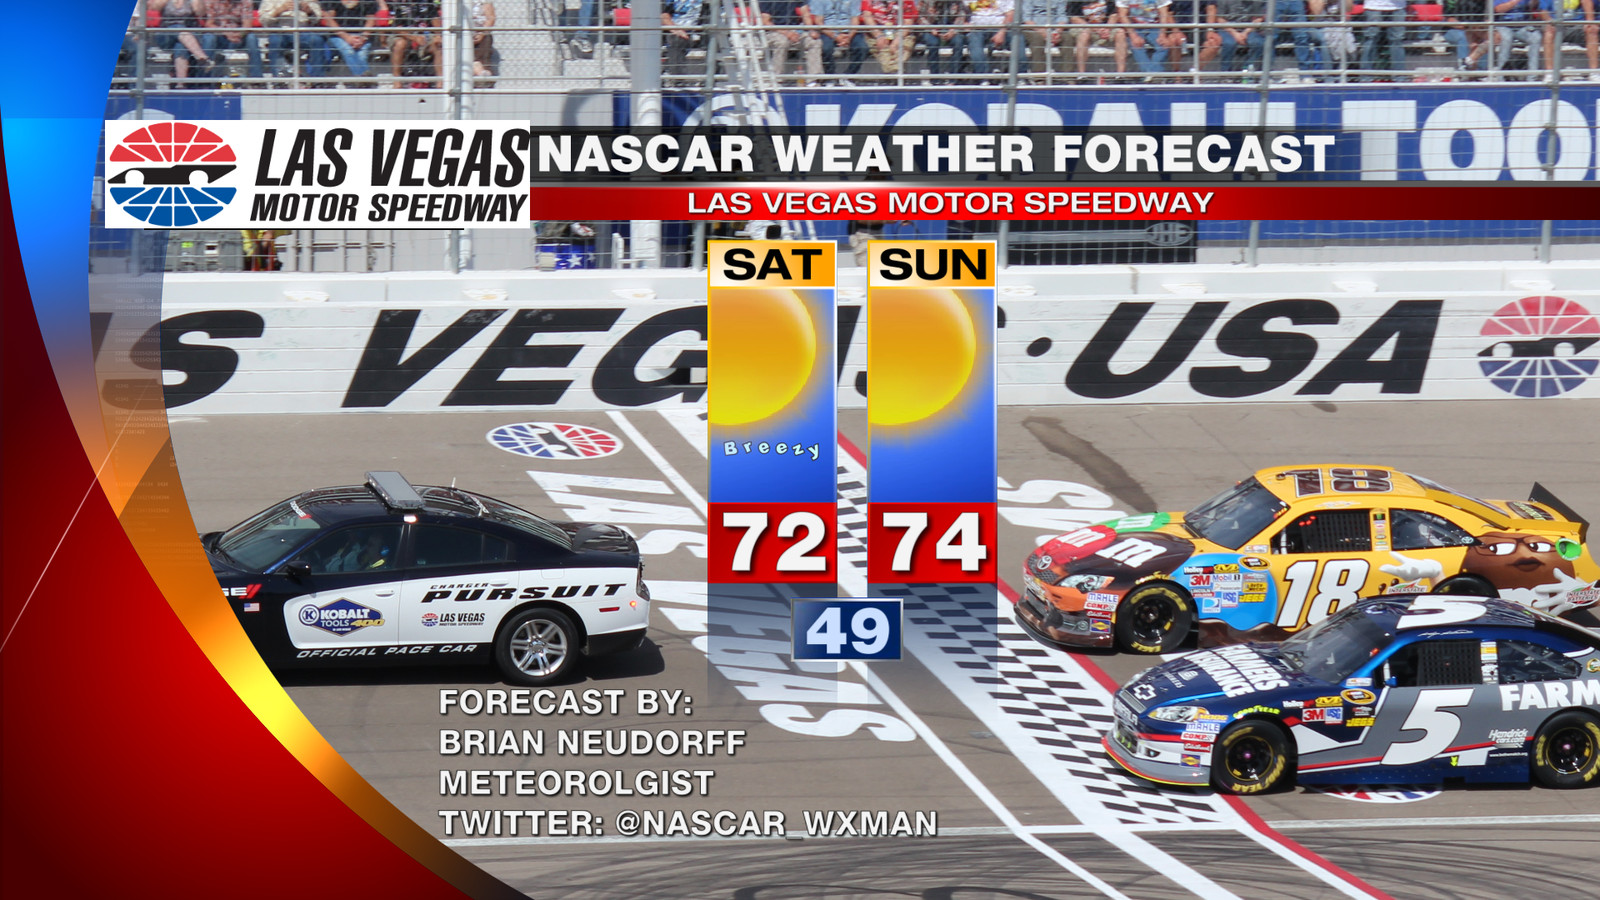 2014 Nascar At Las Vegas Motor Speedway Weekend Weather